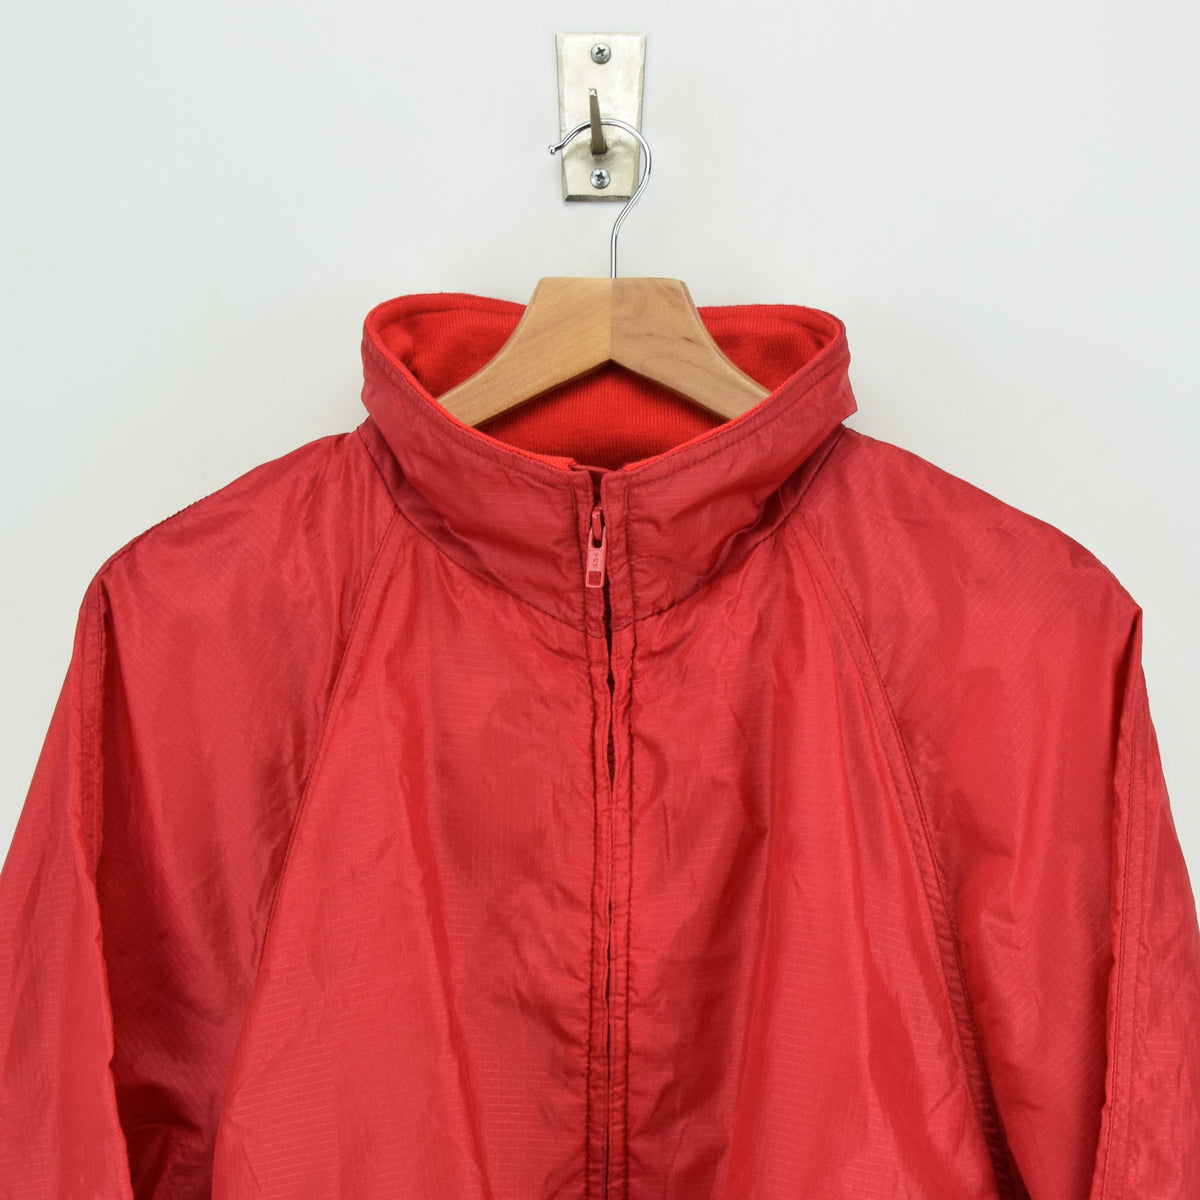 Eddie Bauer Red Hooded Nylon Ripstop Packaway Cagoule Jacket L chest